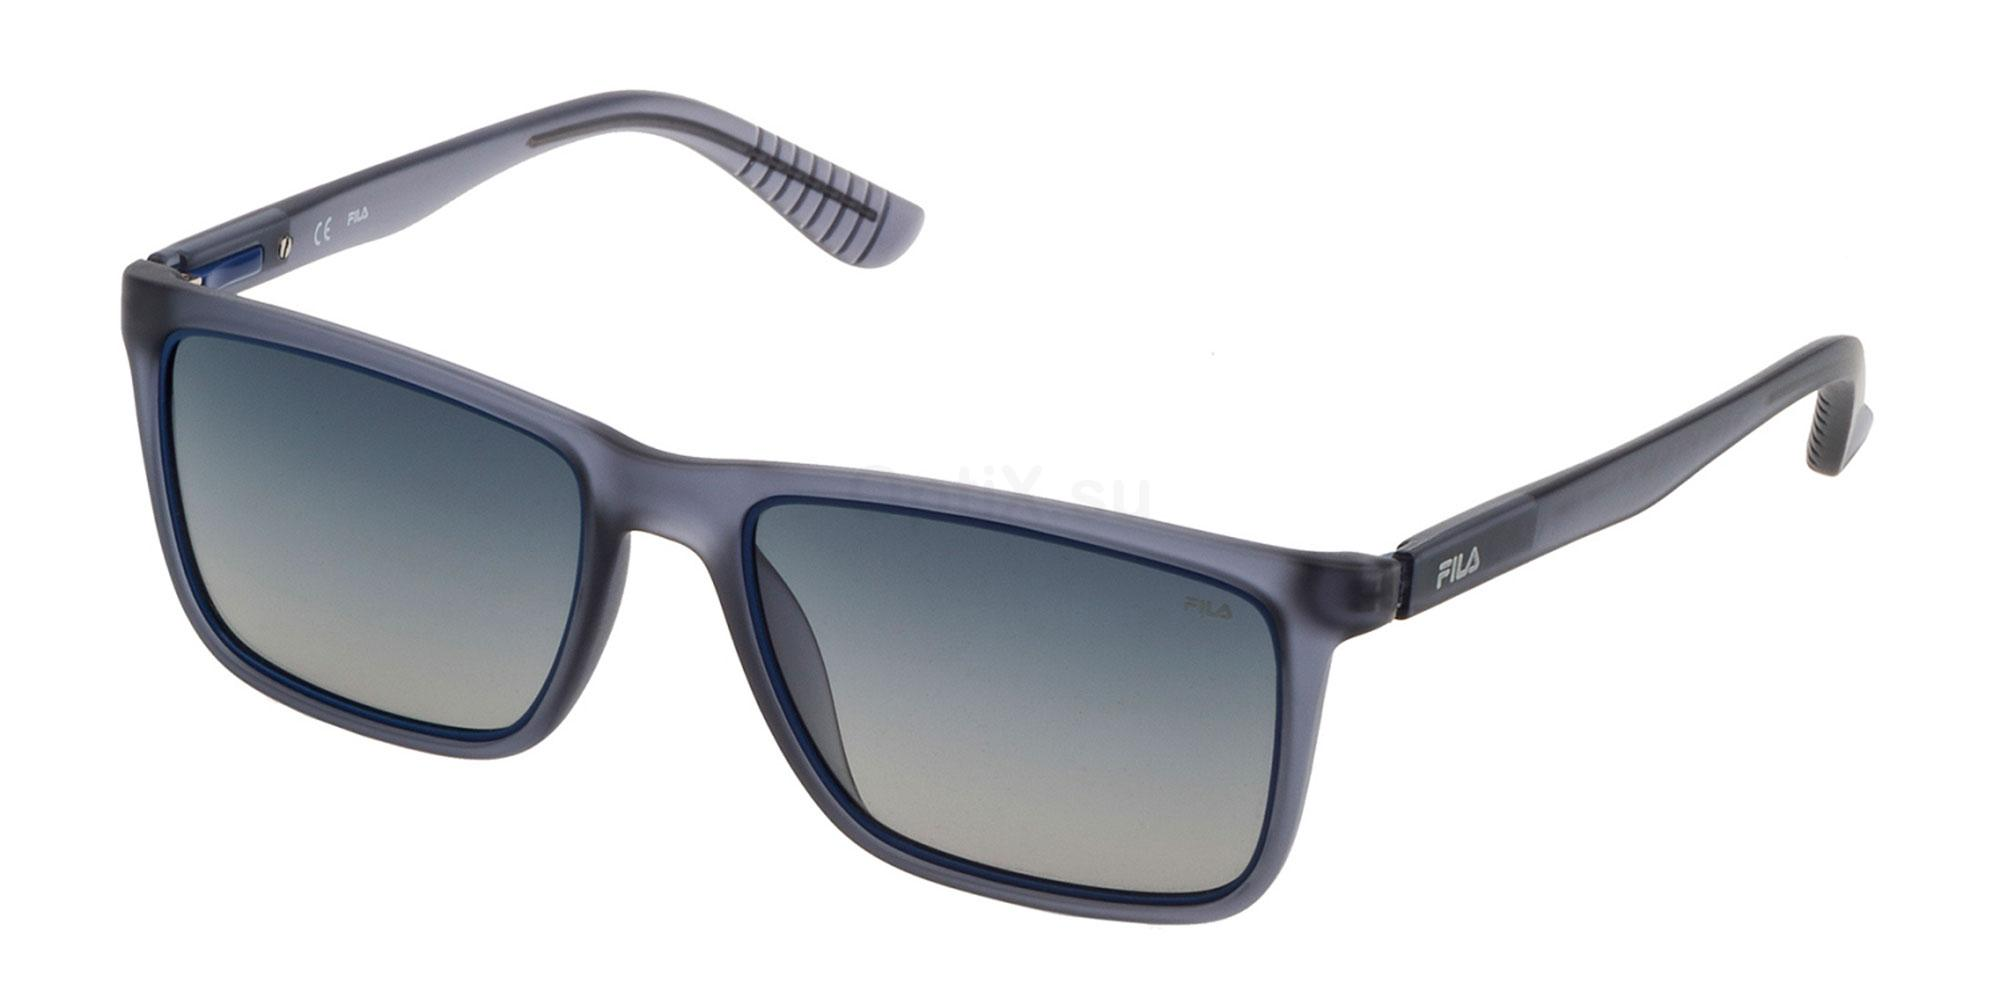 4G0P SF9245 Sunglasses, Fila